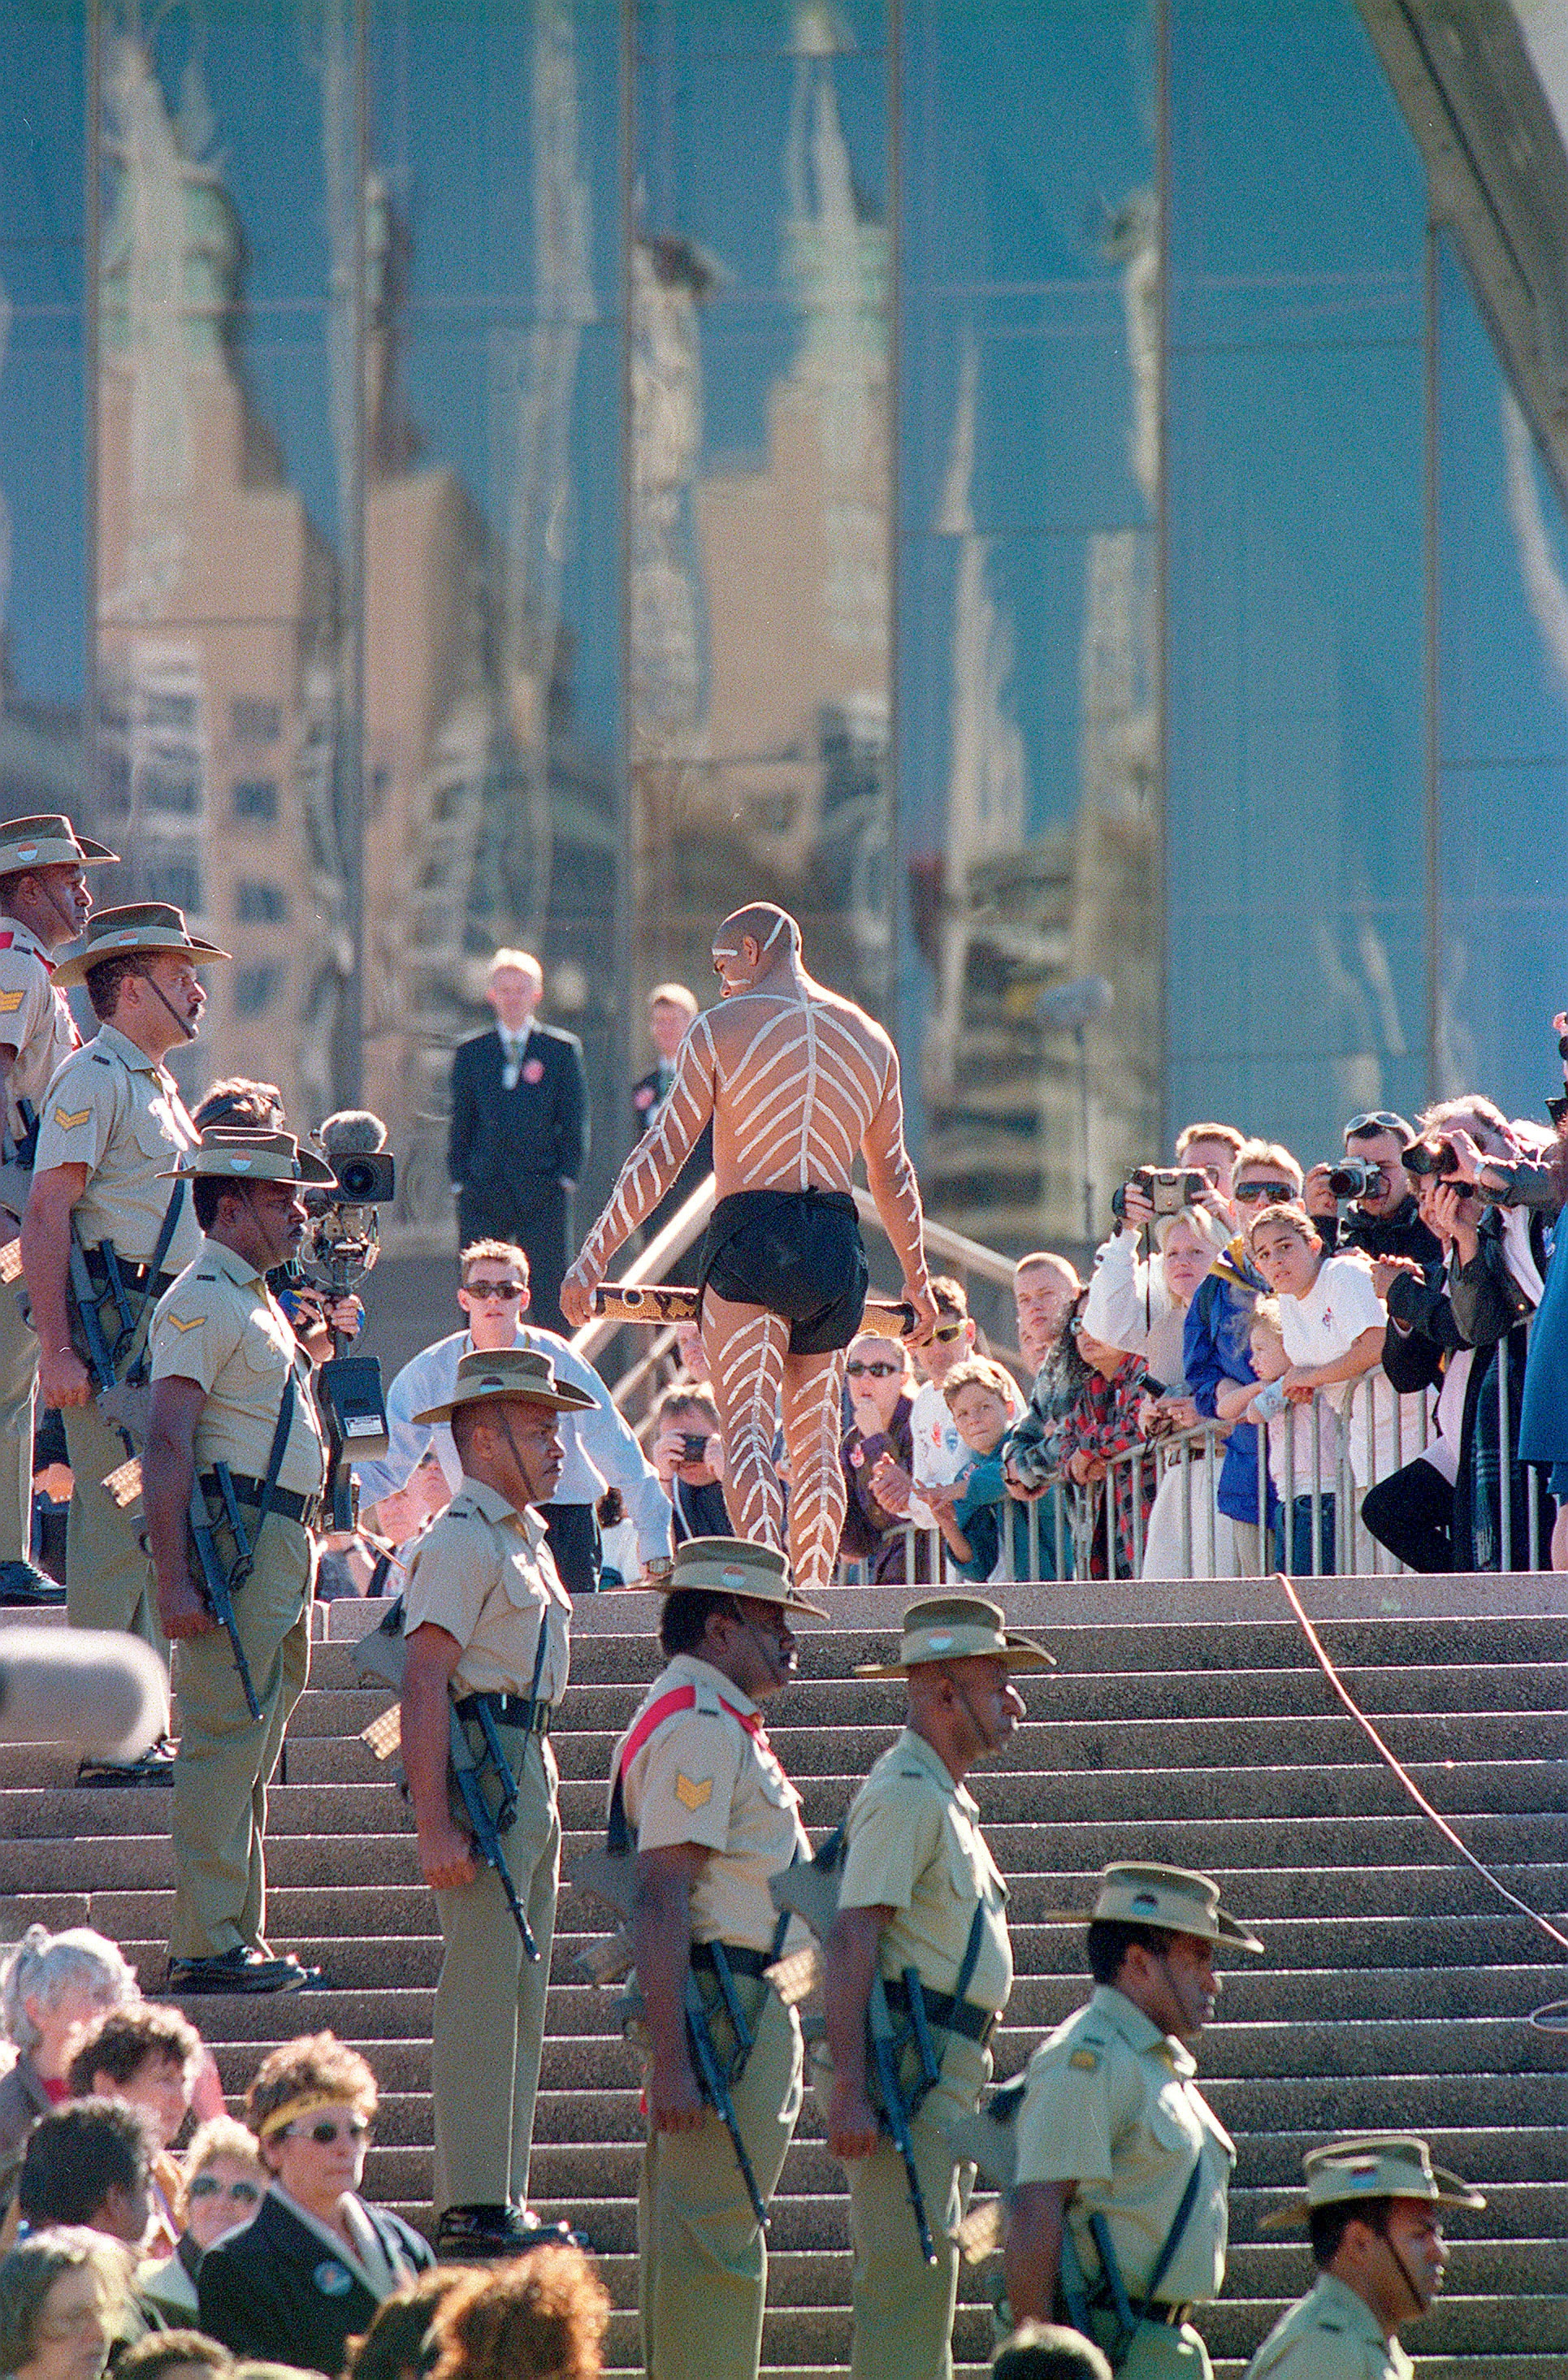 The national reconciliation document is carried into the Sydney Opera House during Corroboree 2000.